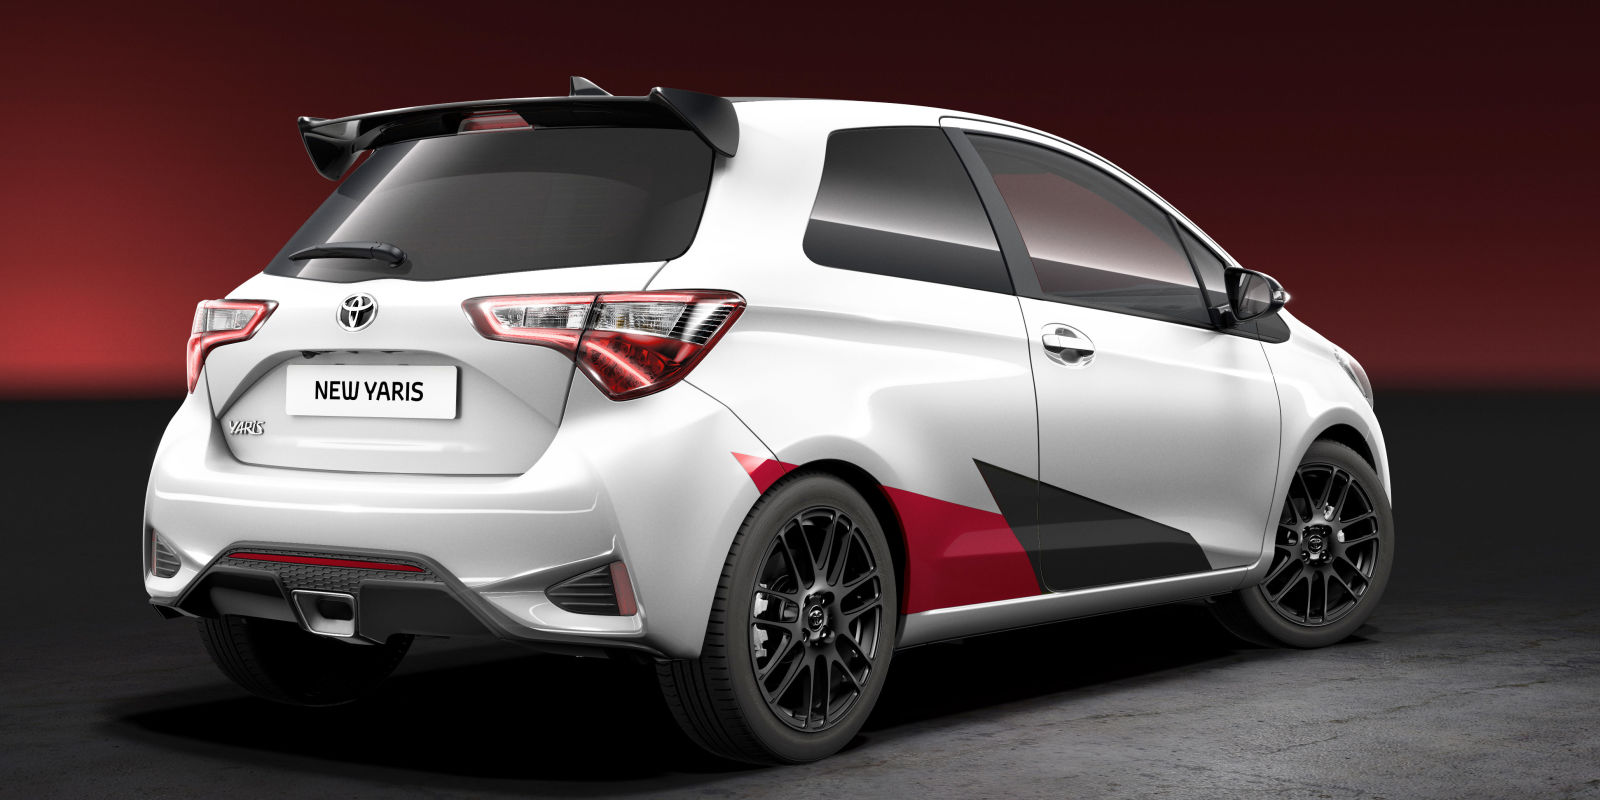 new yaris trd 2017 grand avanza jogja toyota gazoo hot hatch will have supercharged engine